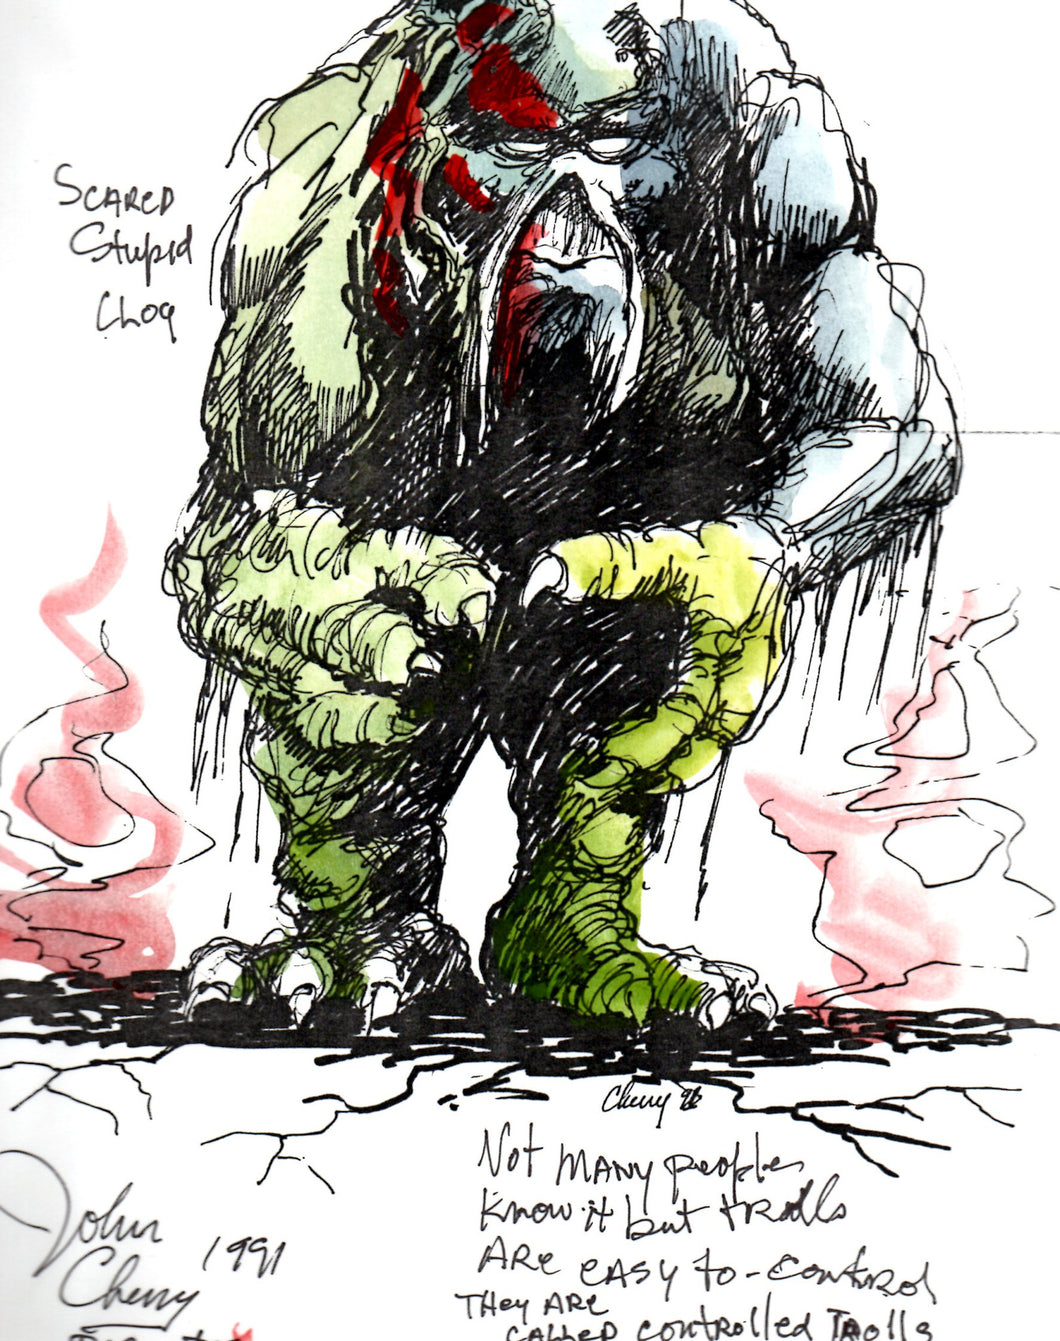 Clog - Ernest Scared Stupid Pre-Production Troll Design - SBS029